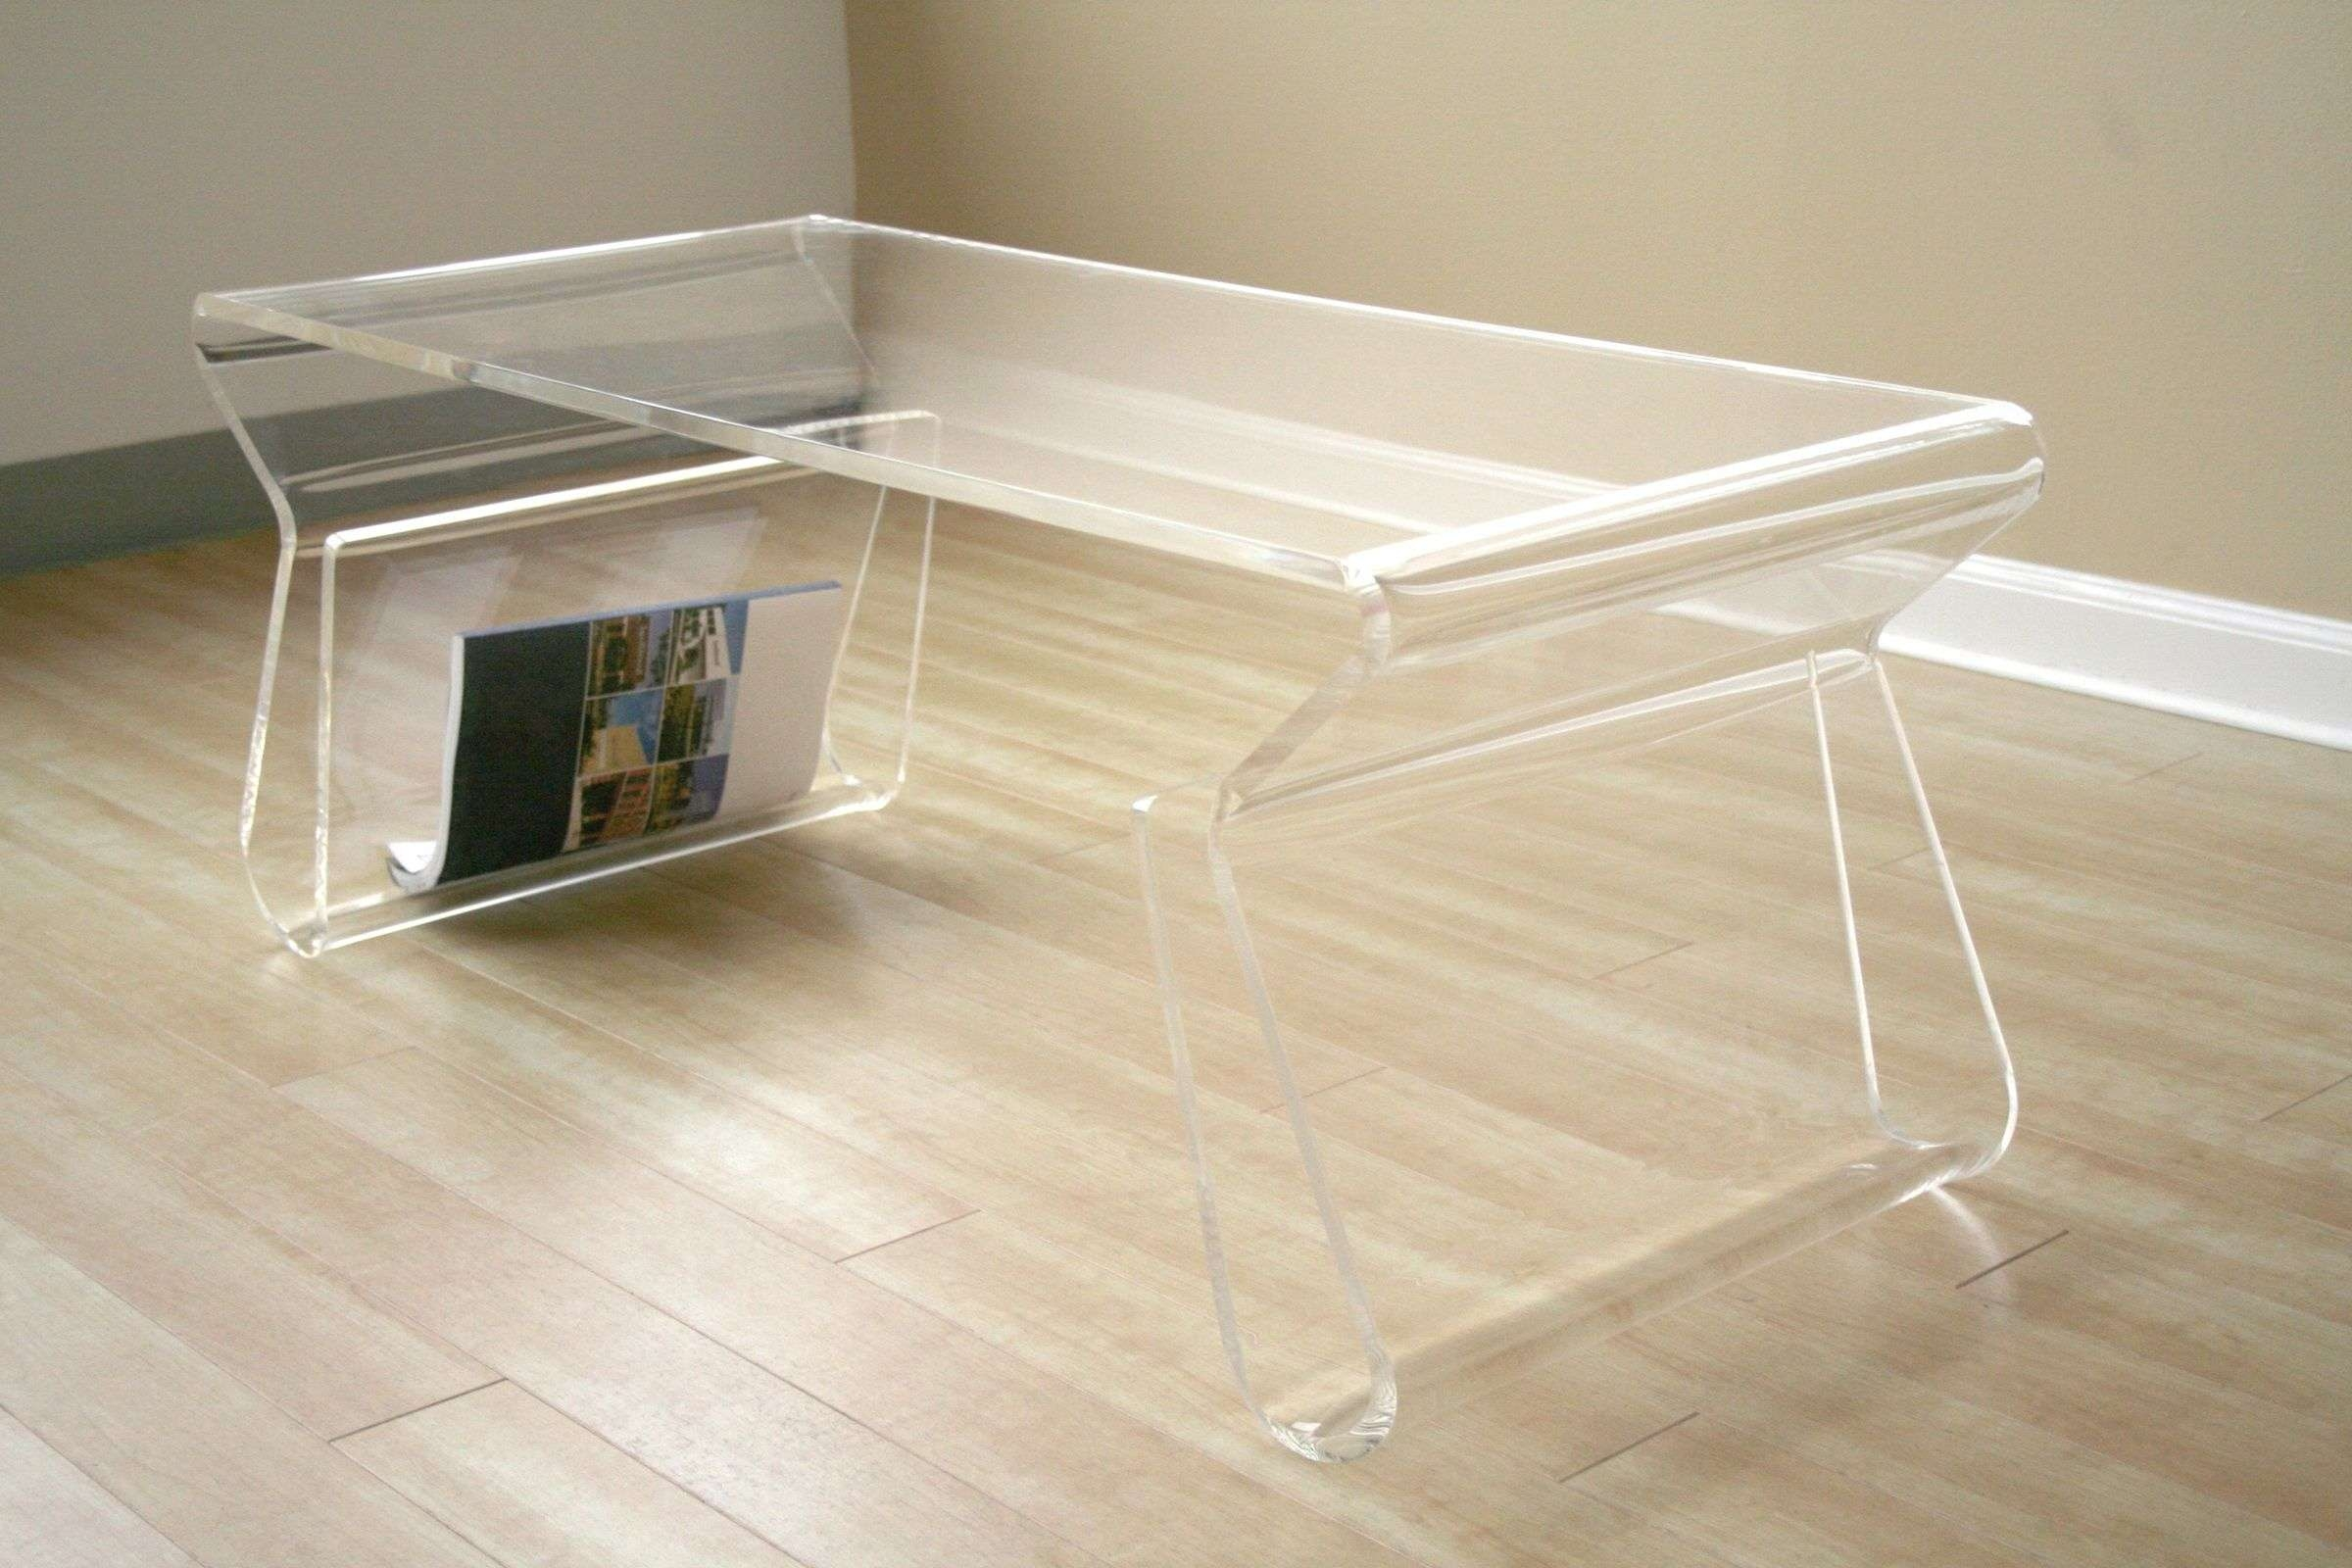 Fashionable Acrylic Coffee Tables With Magazine Rack For Clear Coffee Table – Writehookstudio (View 13 of 20)